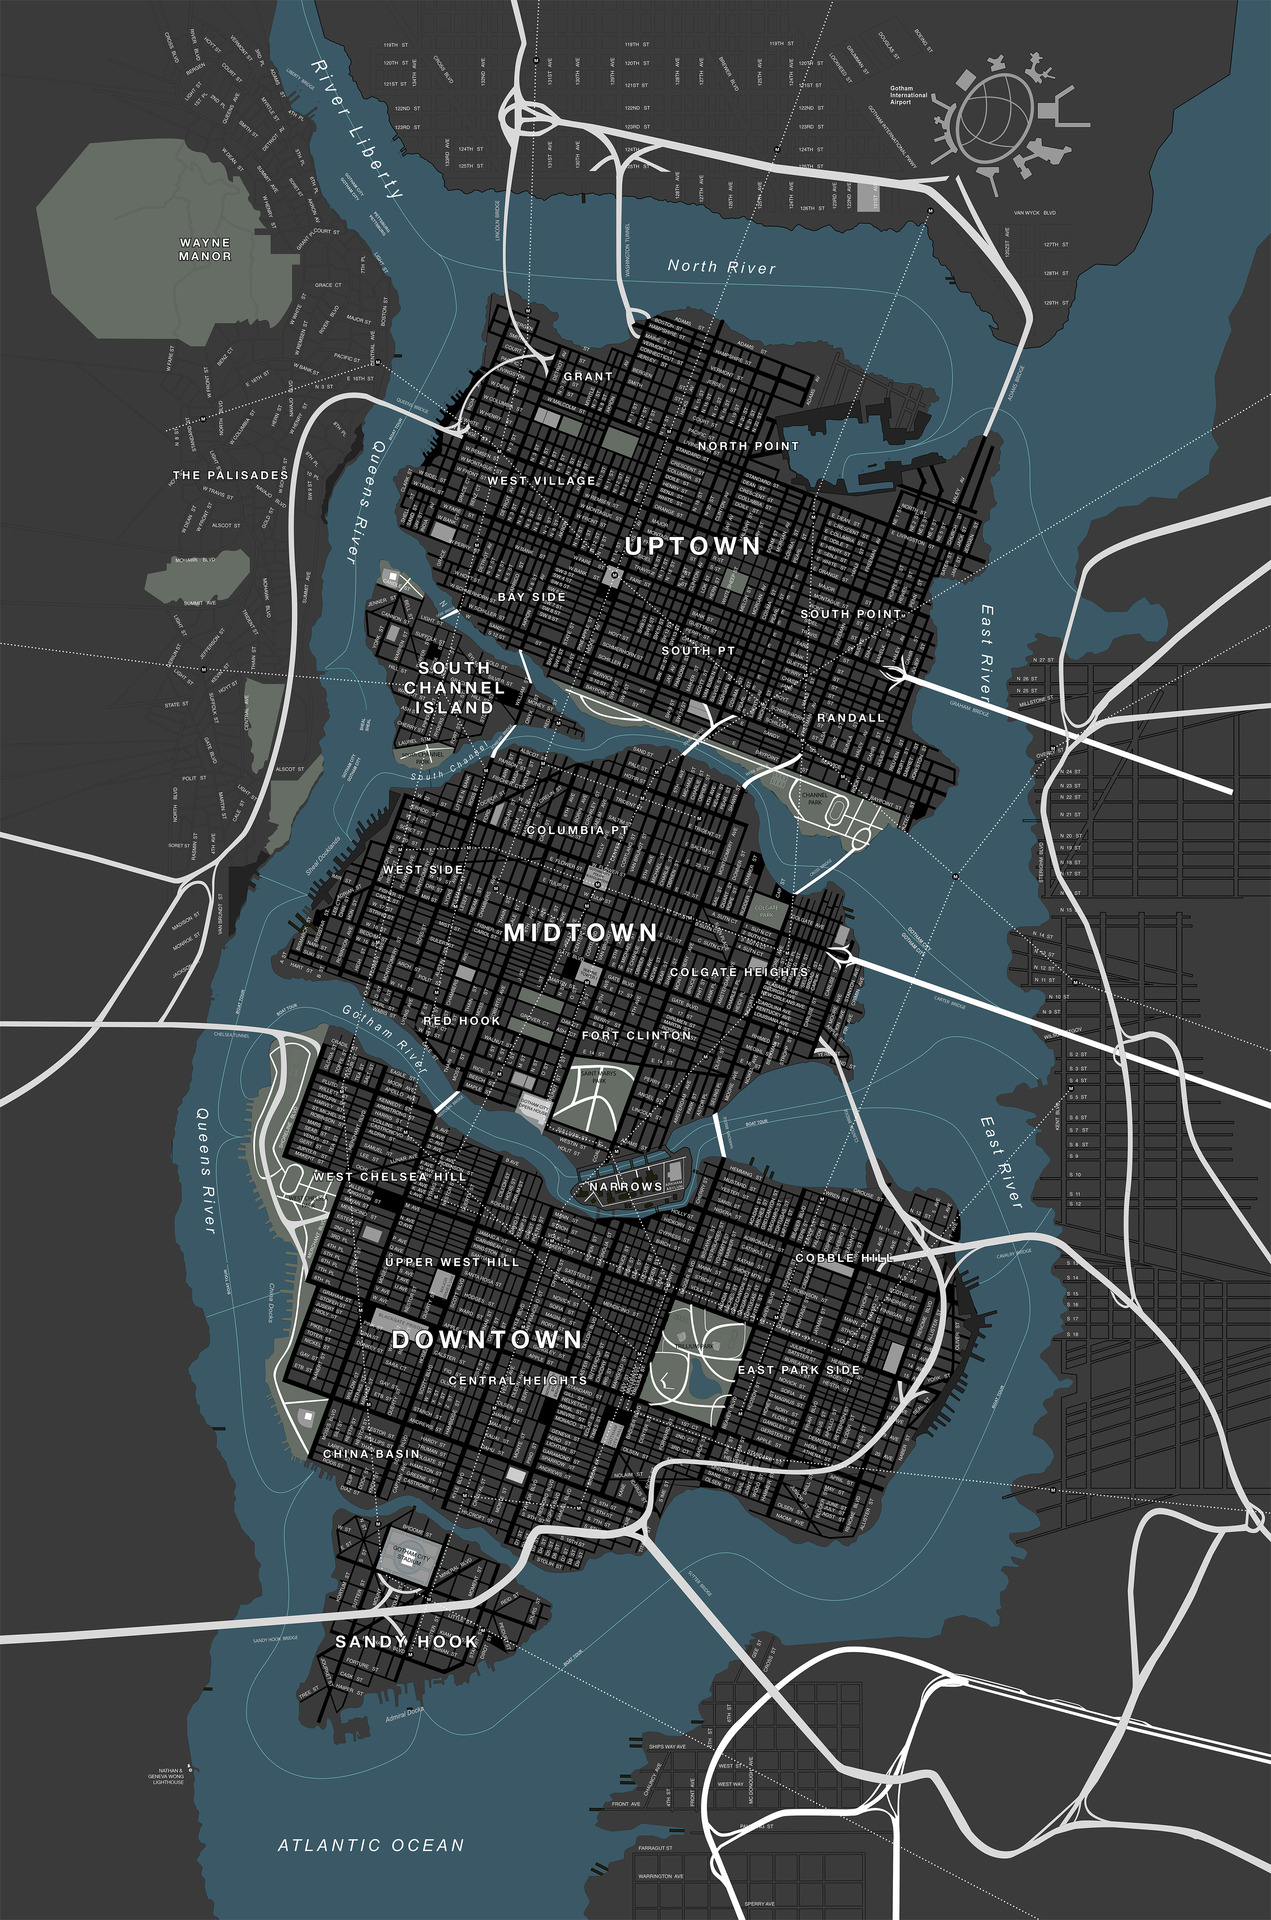 CONFIRMED Section Of Gotham Renamed Sandy Hook In Latest Dark - Washington dc map conspiracy